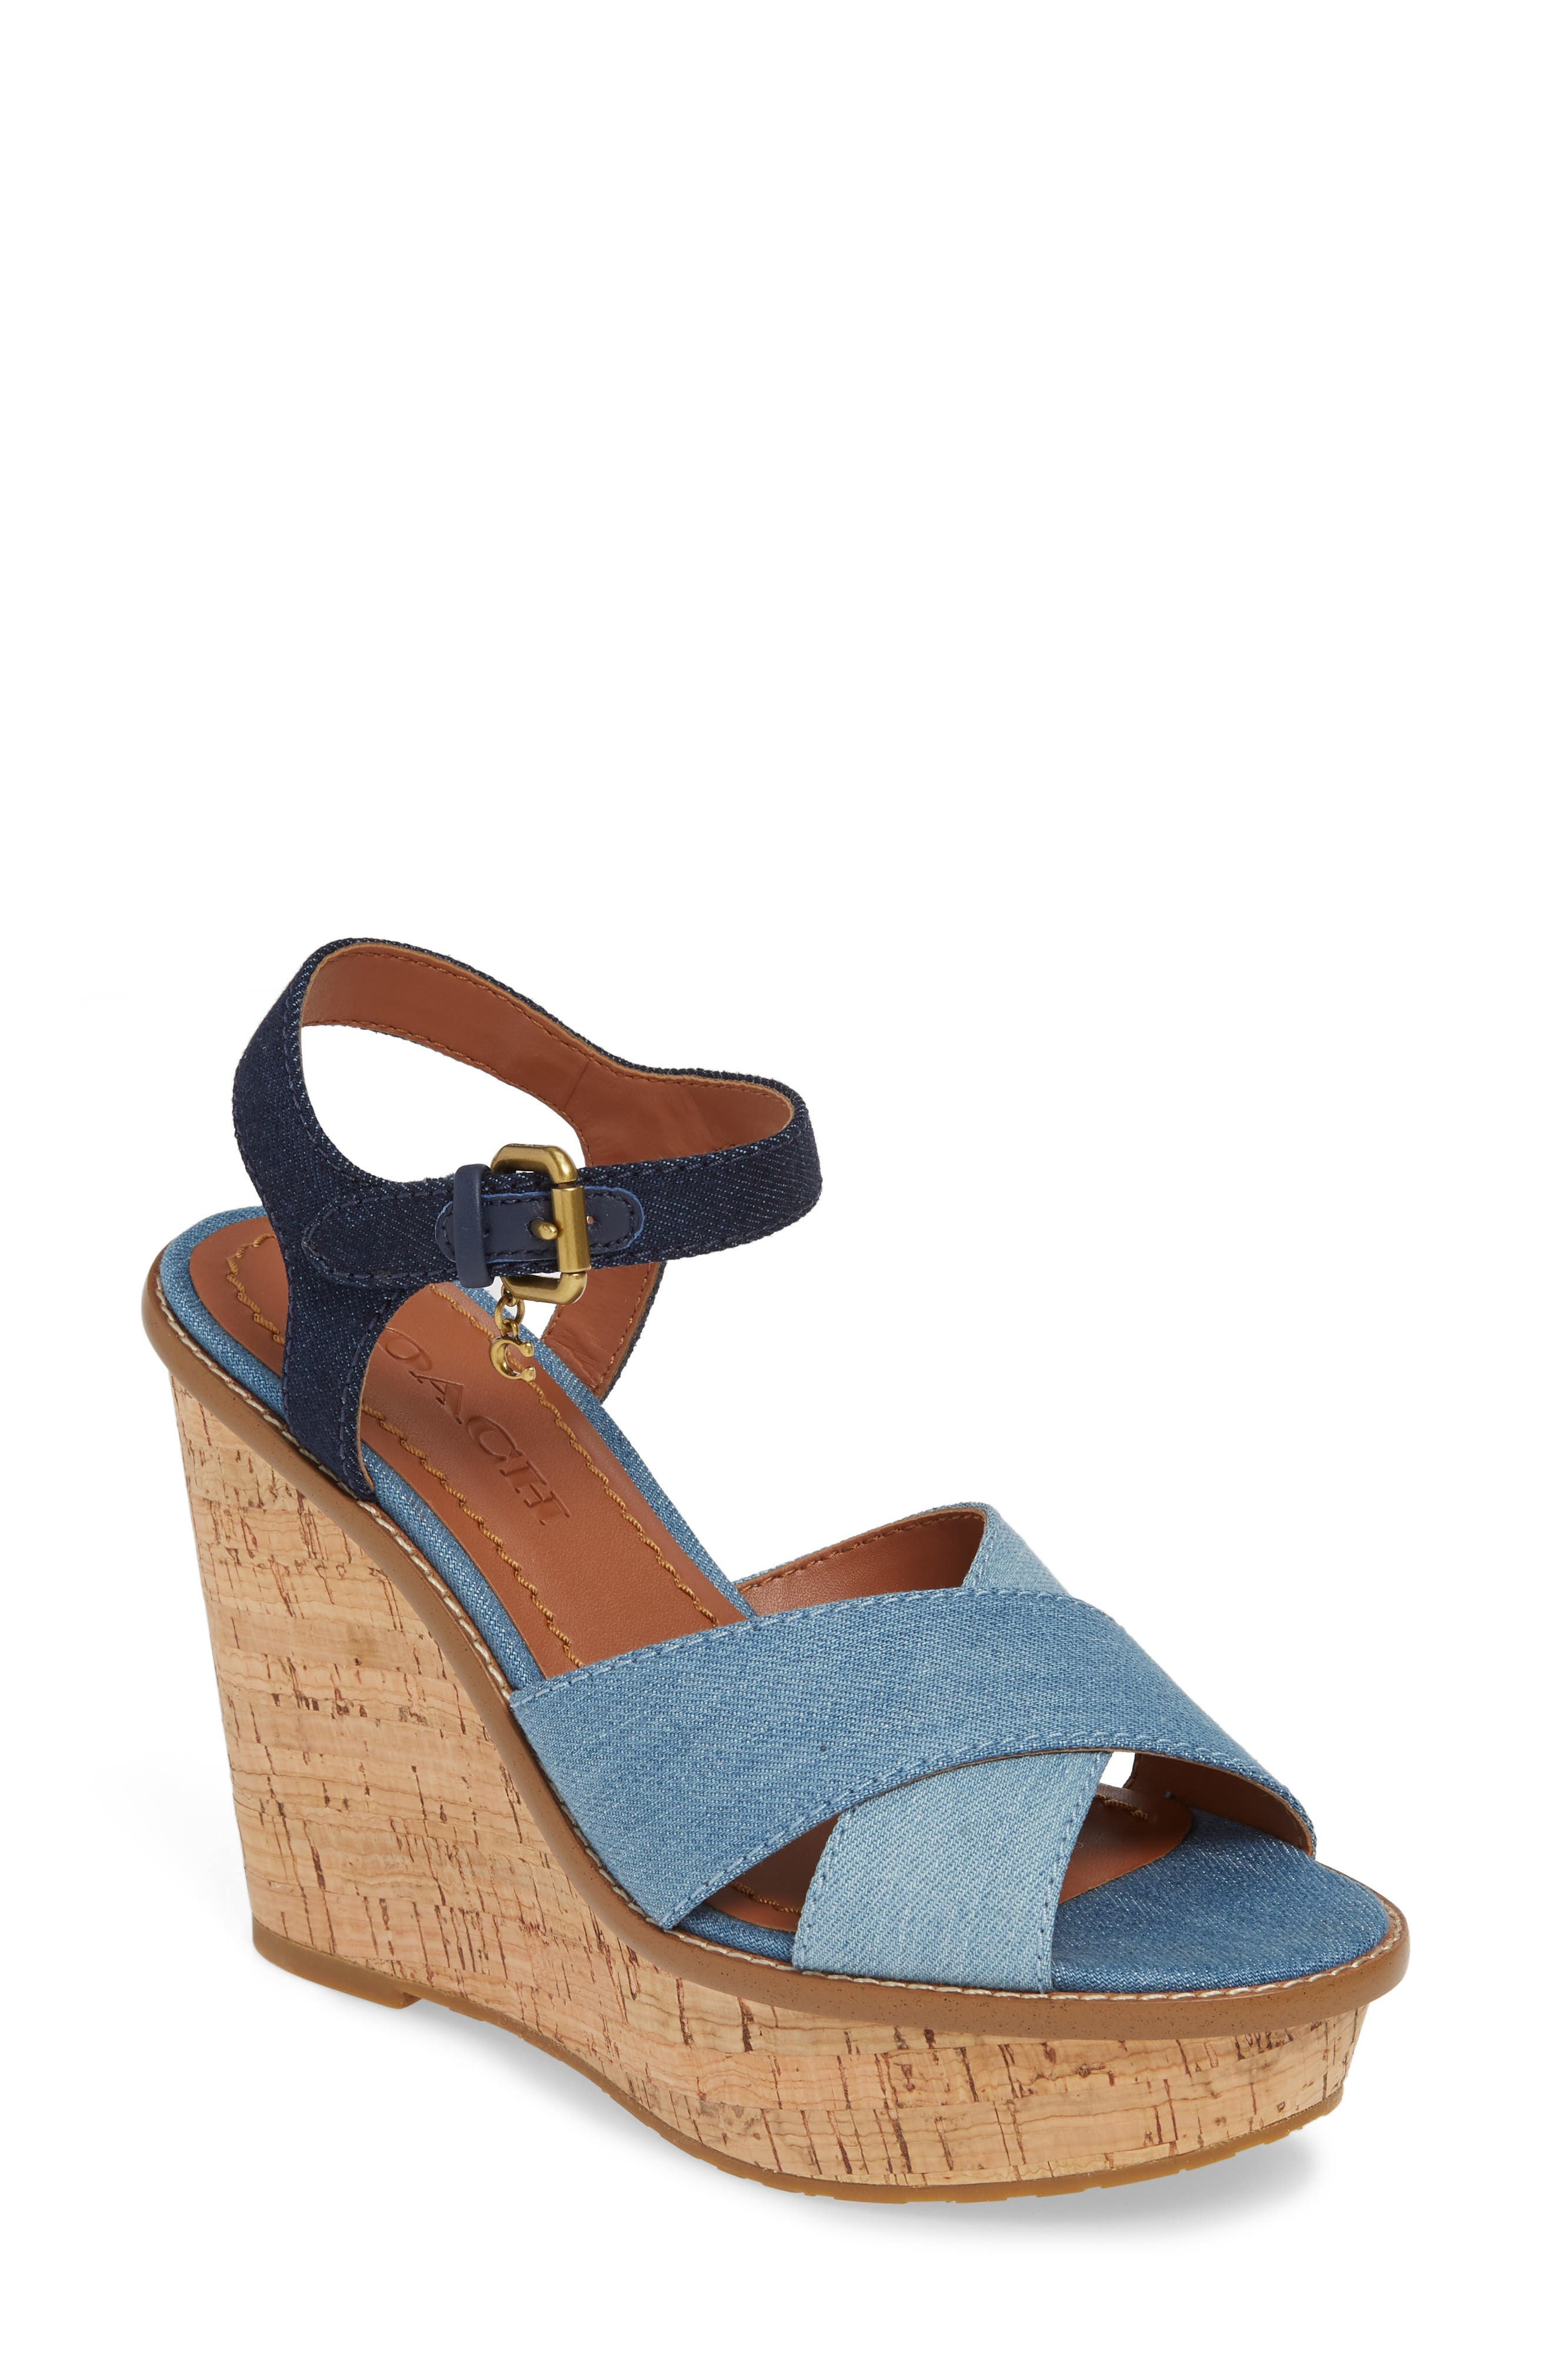 Coach Cross Band Wedge Sandal- Blue